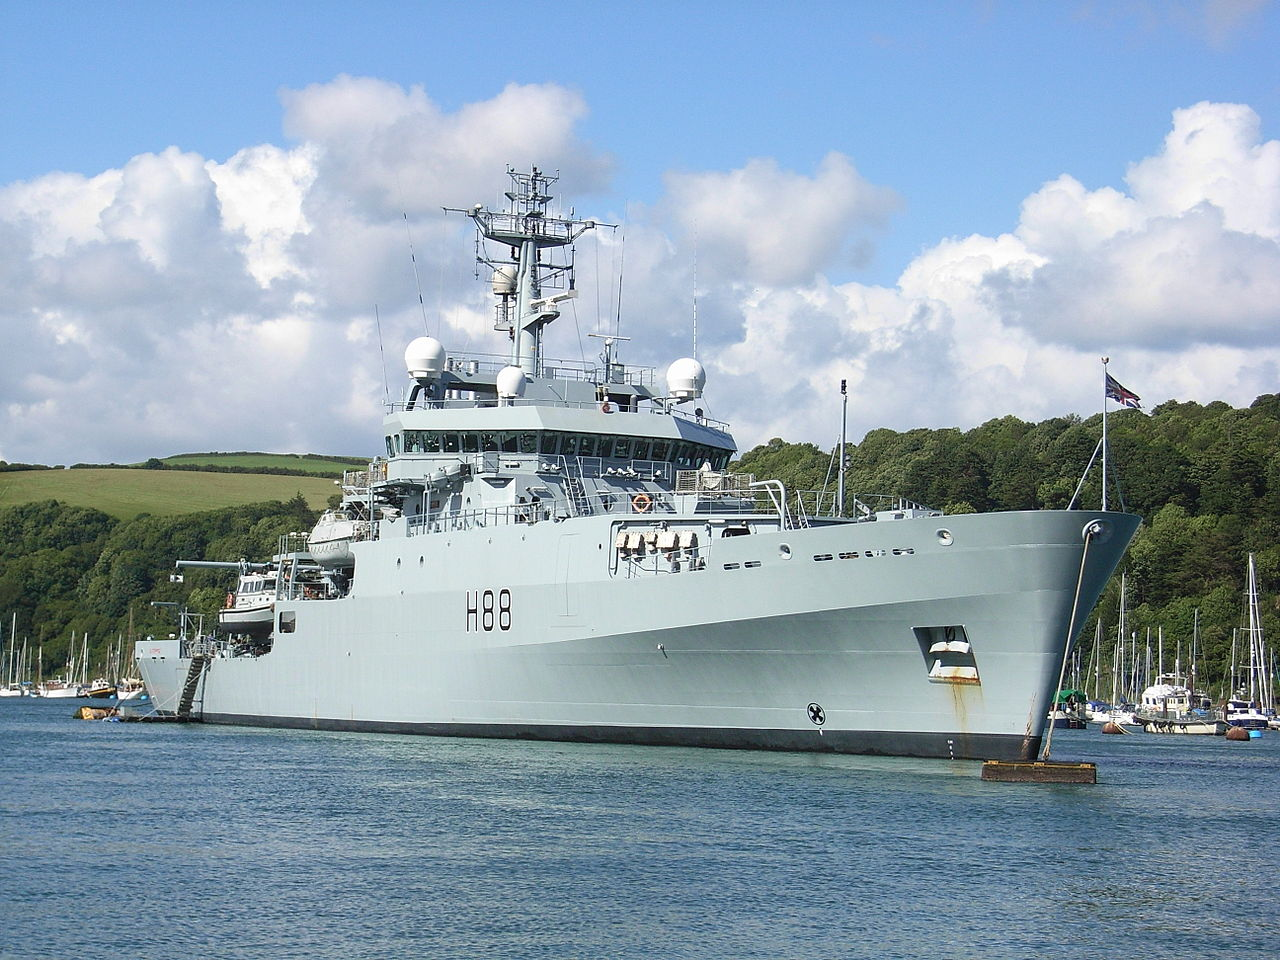 HMS Enterprise at anchor in Dartmouth